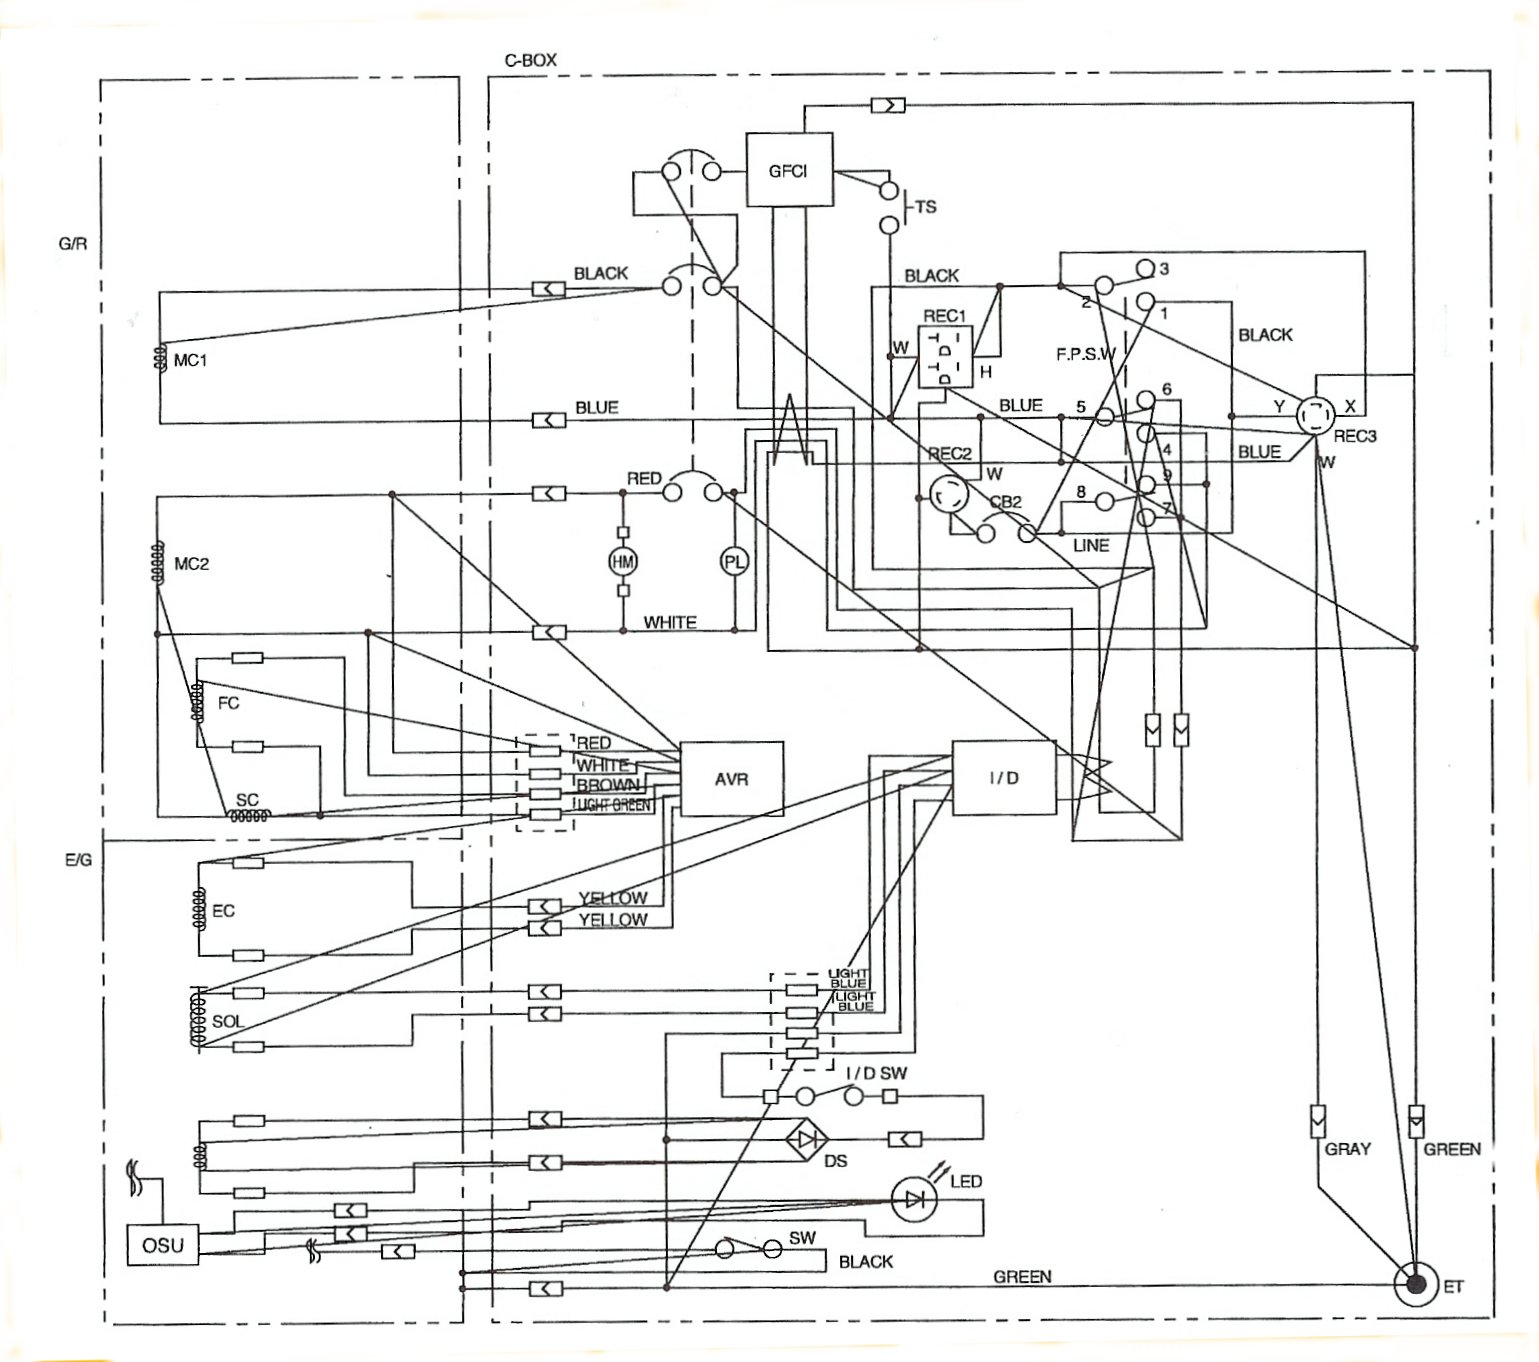 Wiring Diagram For Honda Eu2000i Generator Home Wiring